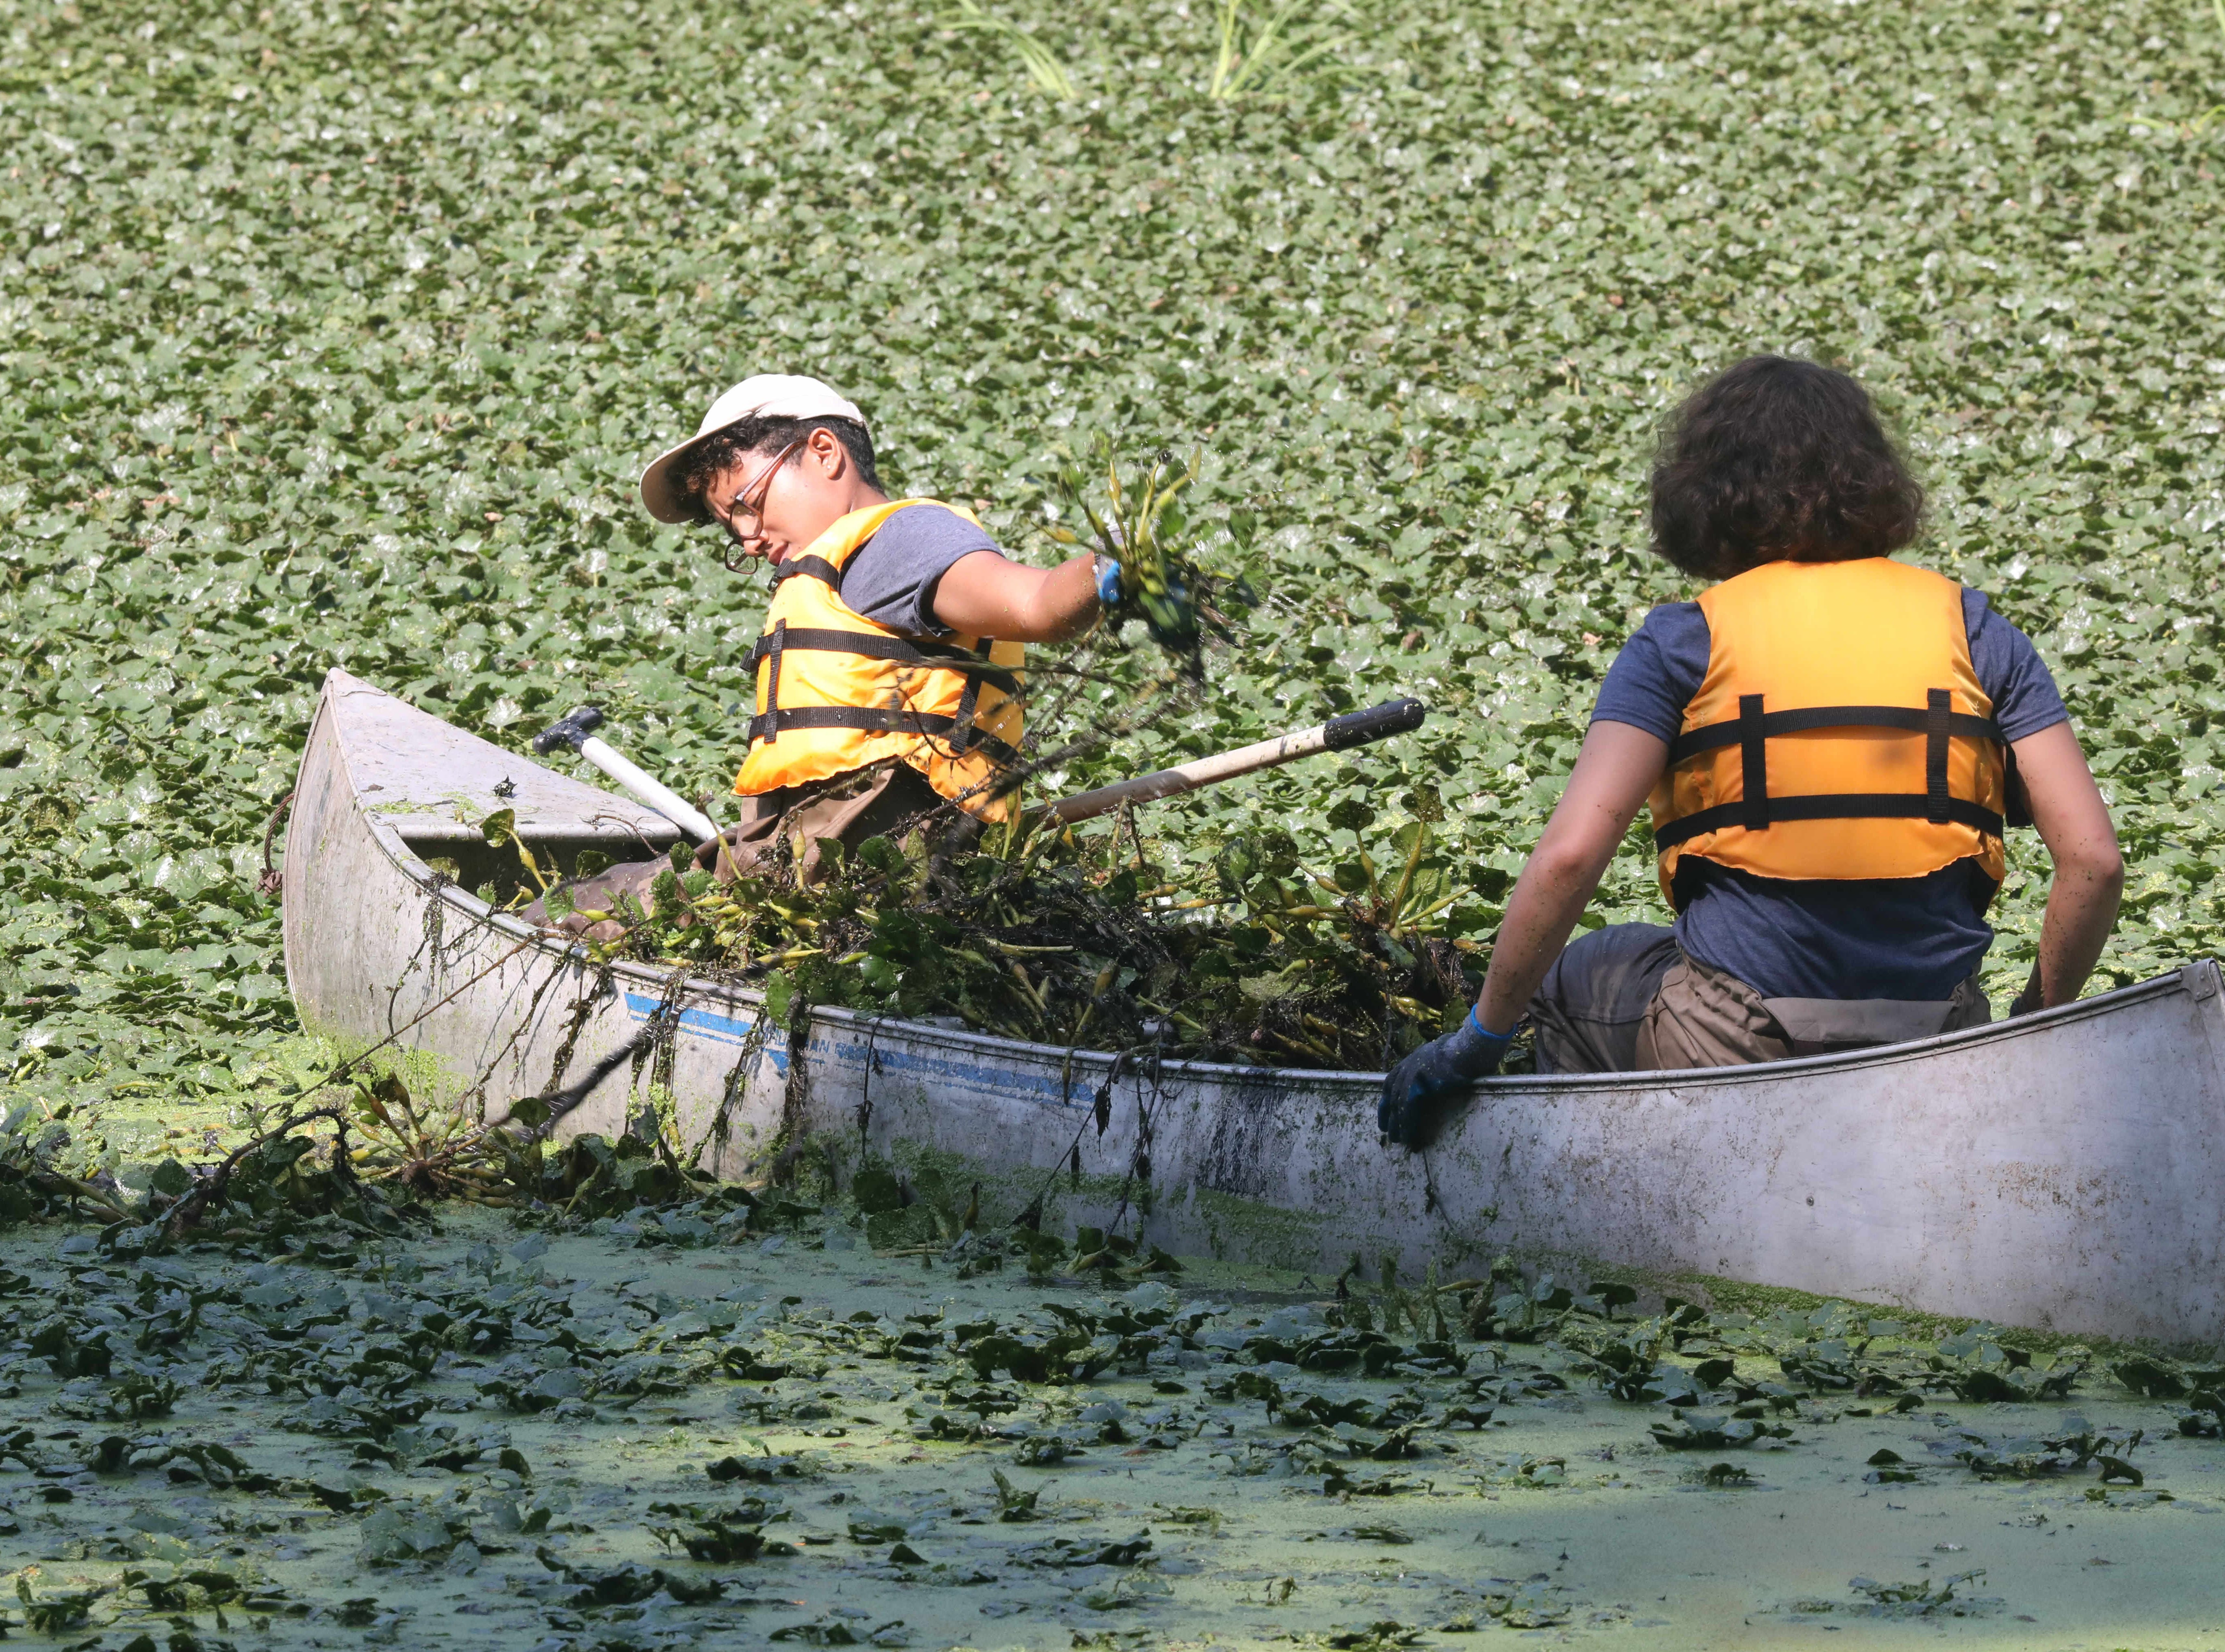 Volunteers with Friends of Van Cortlandt Park and Groundwork Hudson Valley assist The Westchester Parks Foundation, collecting some invasive water chestnut plants from the lake at Tibbetts Brook Park in Yonkers, Aug. 8, 2018.